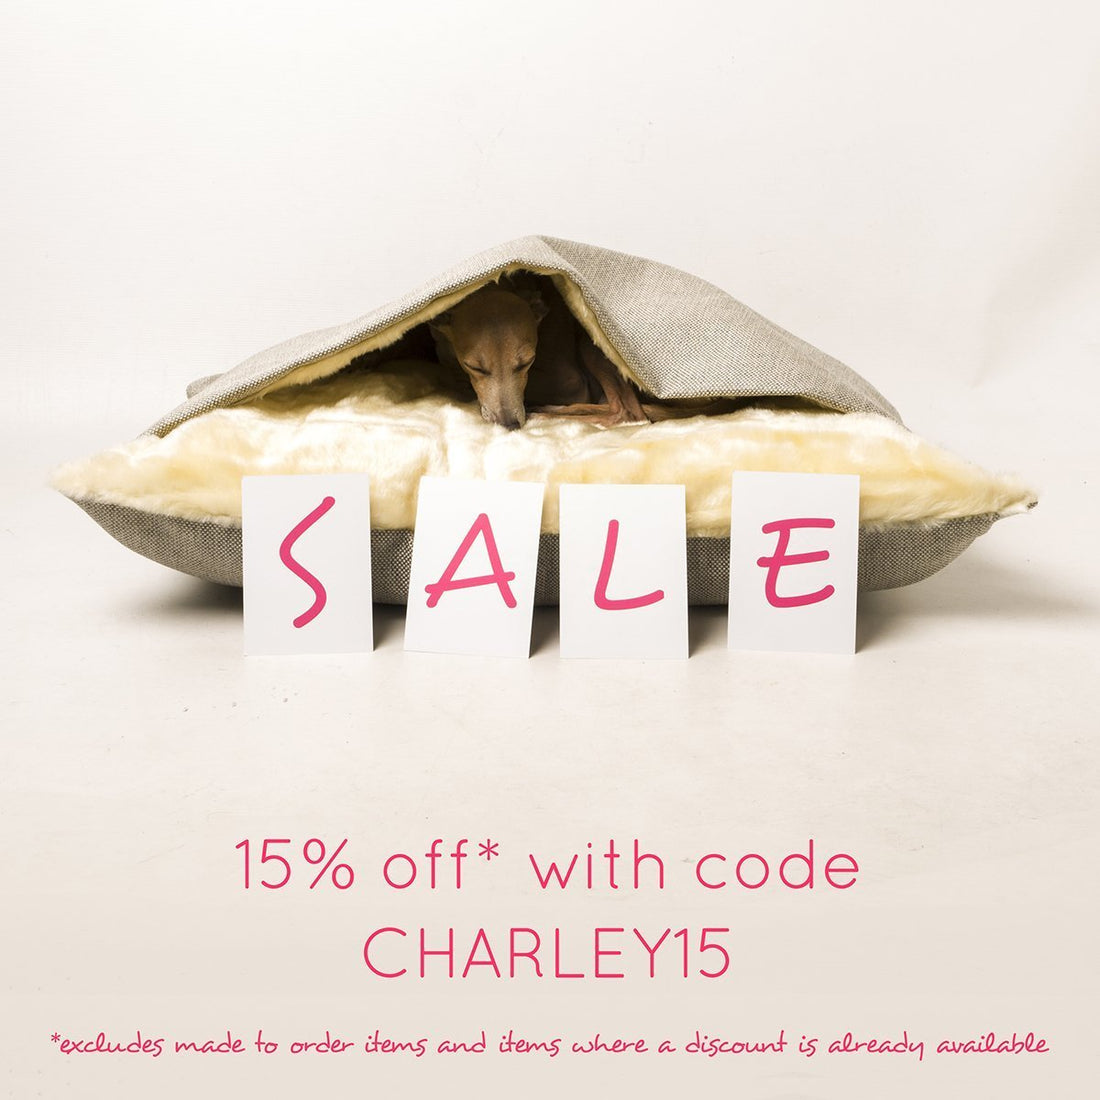 Our summer sale is now on with a fab 15% off!